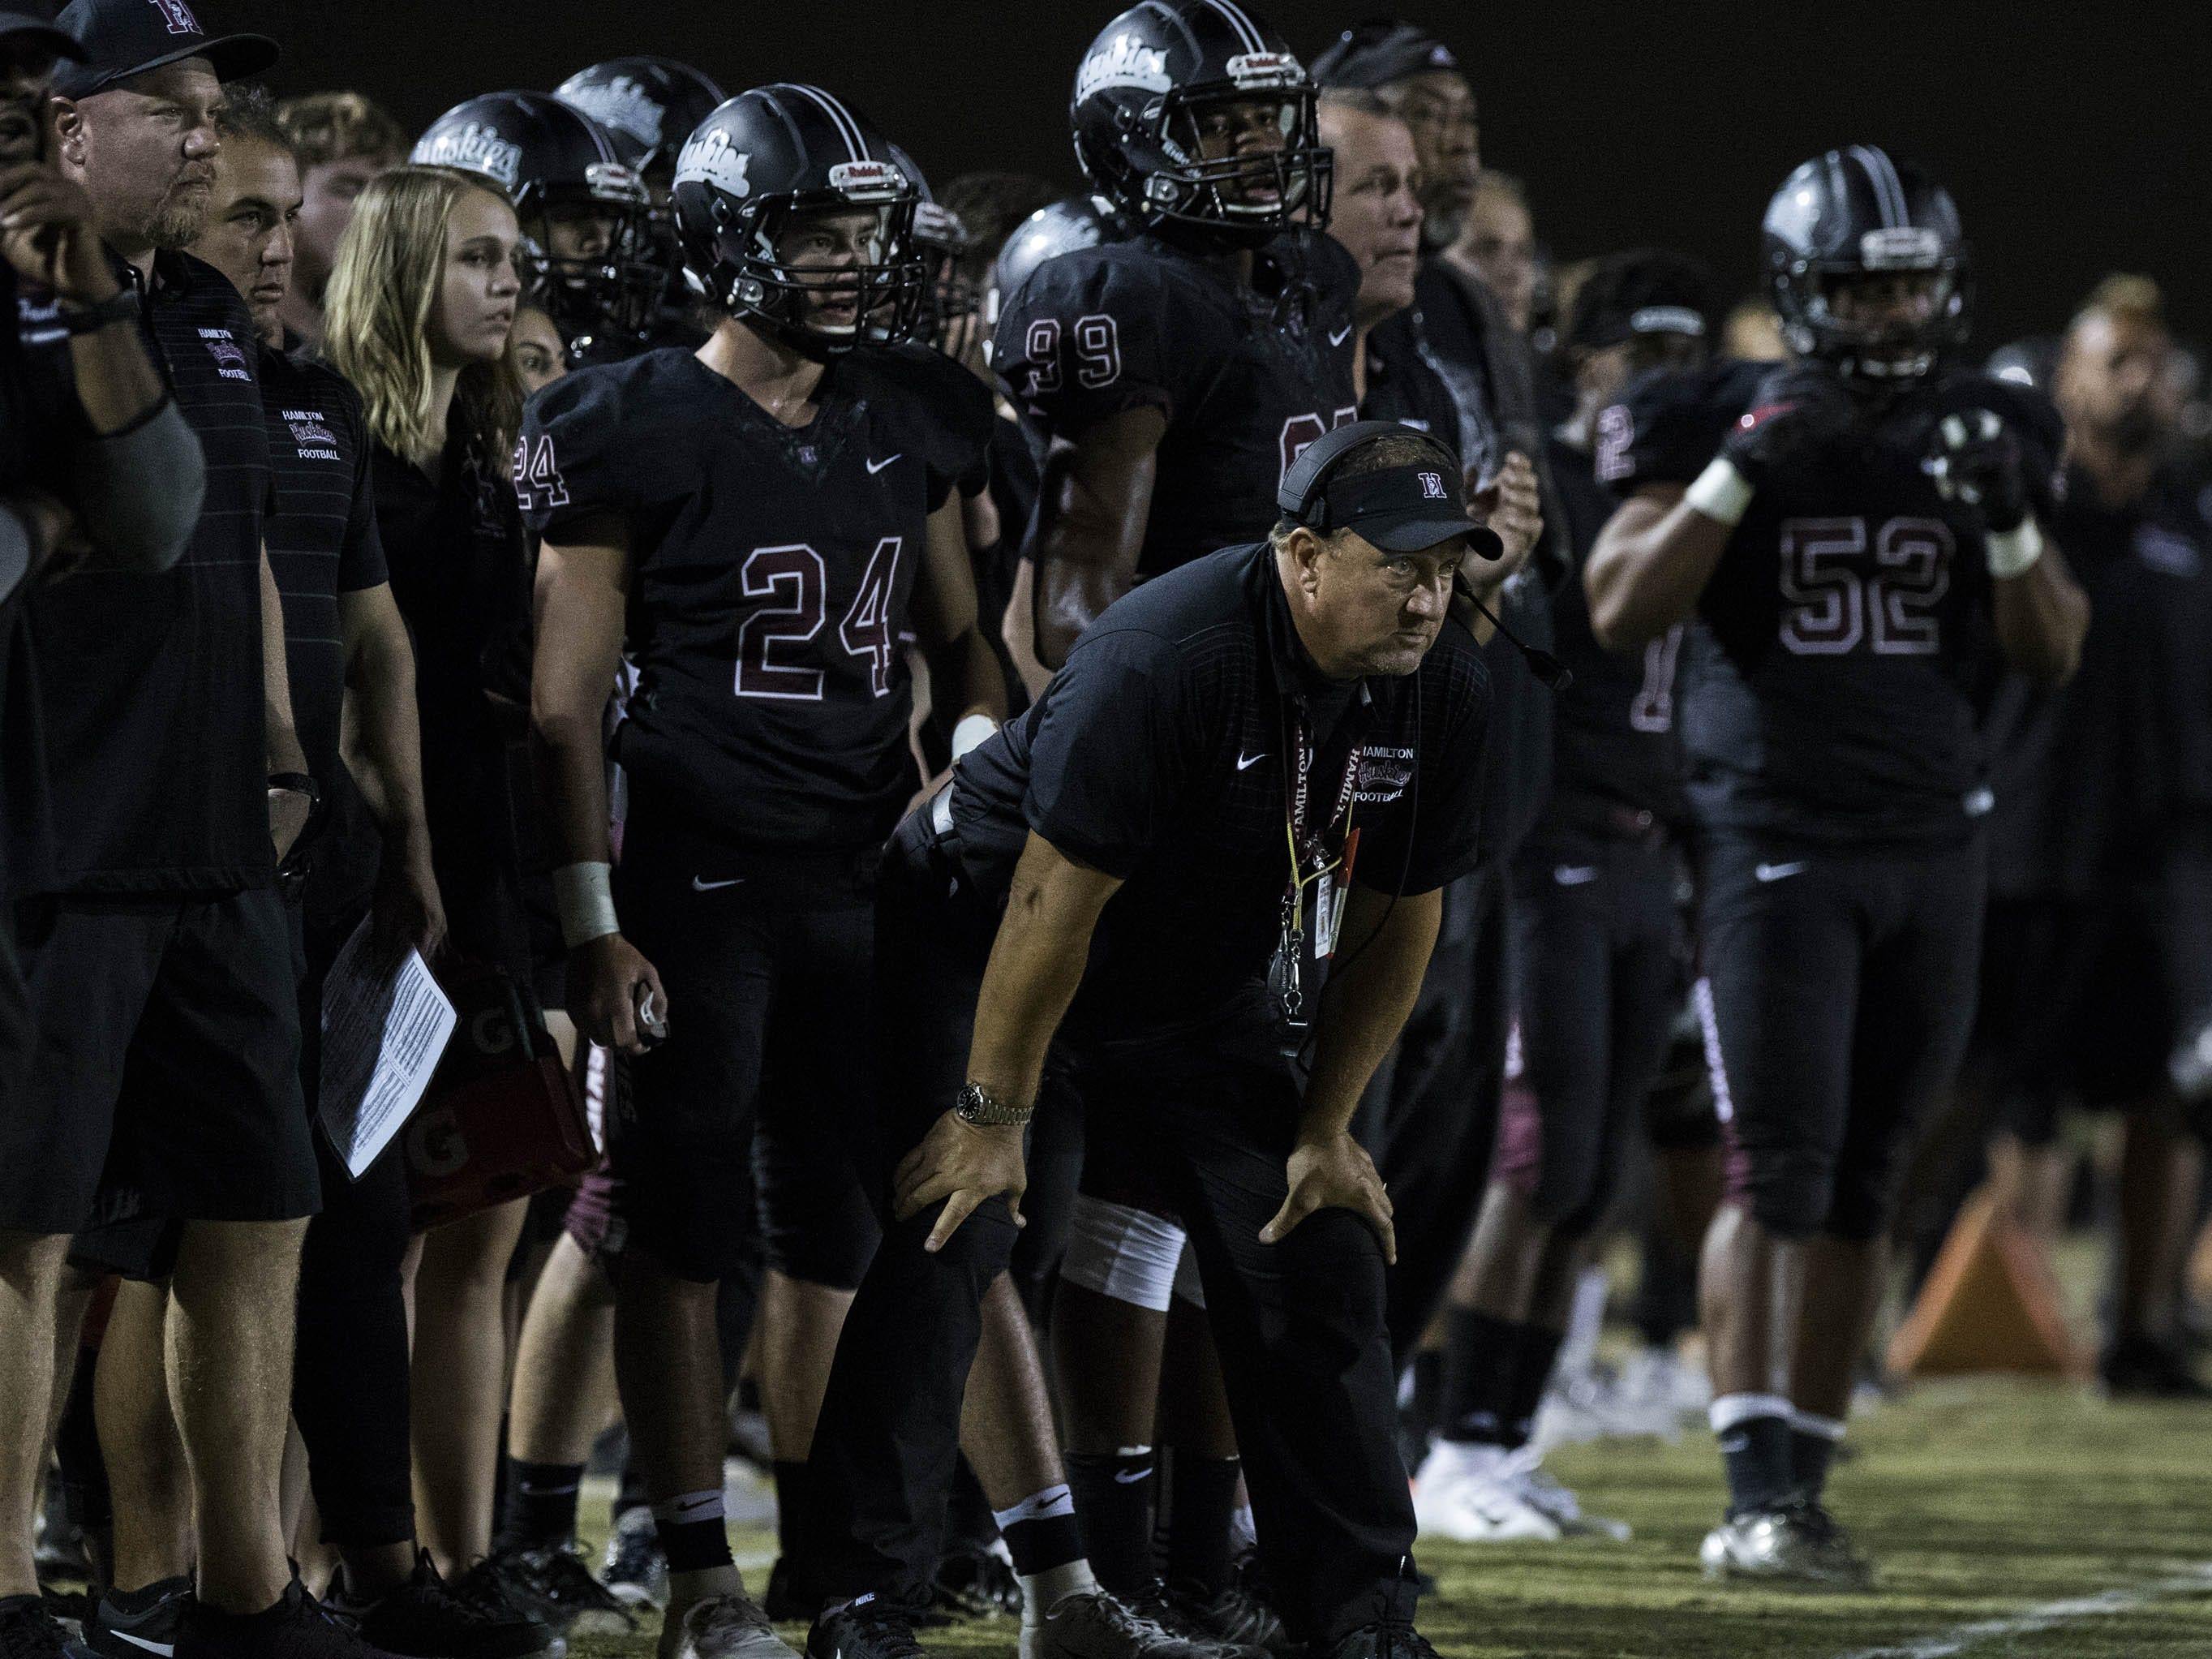 Hamilton Huskies' head coach Mike Zdebski watches his team agains the crosstown rivals the Chandler Wolves during their game in Chandler, Friday, Oct. 26, 2018. #azhsfb